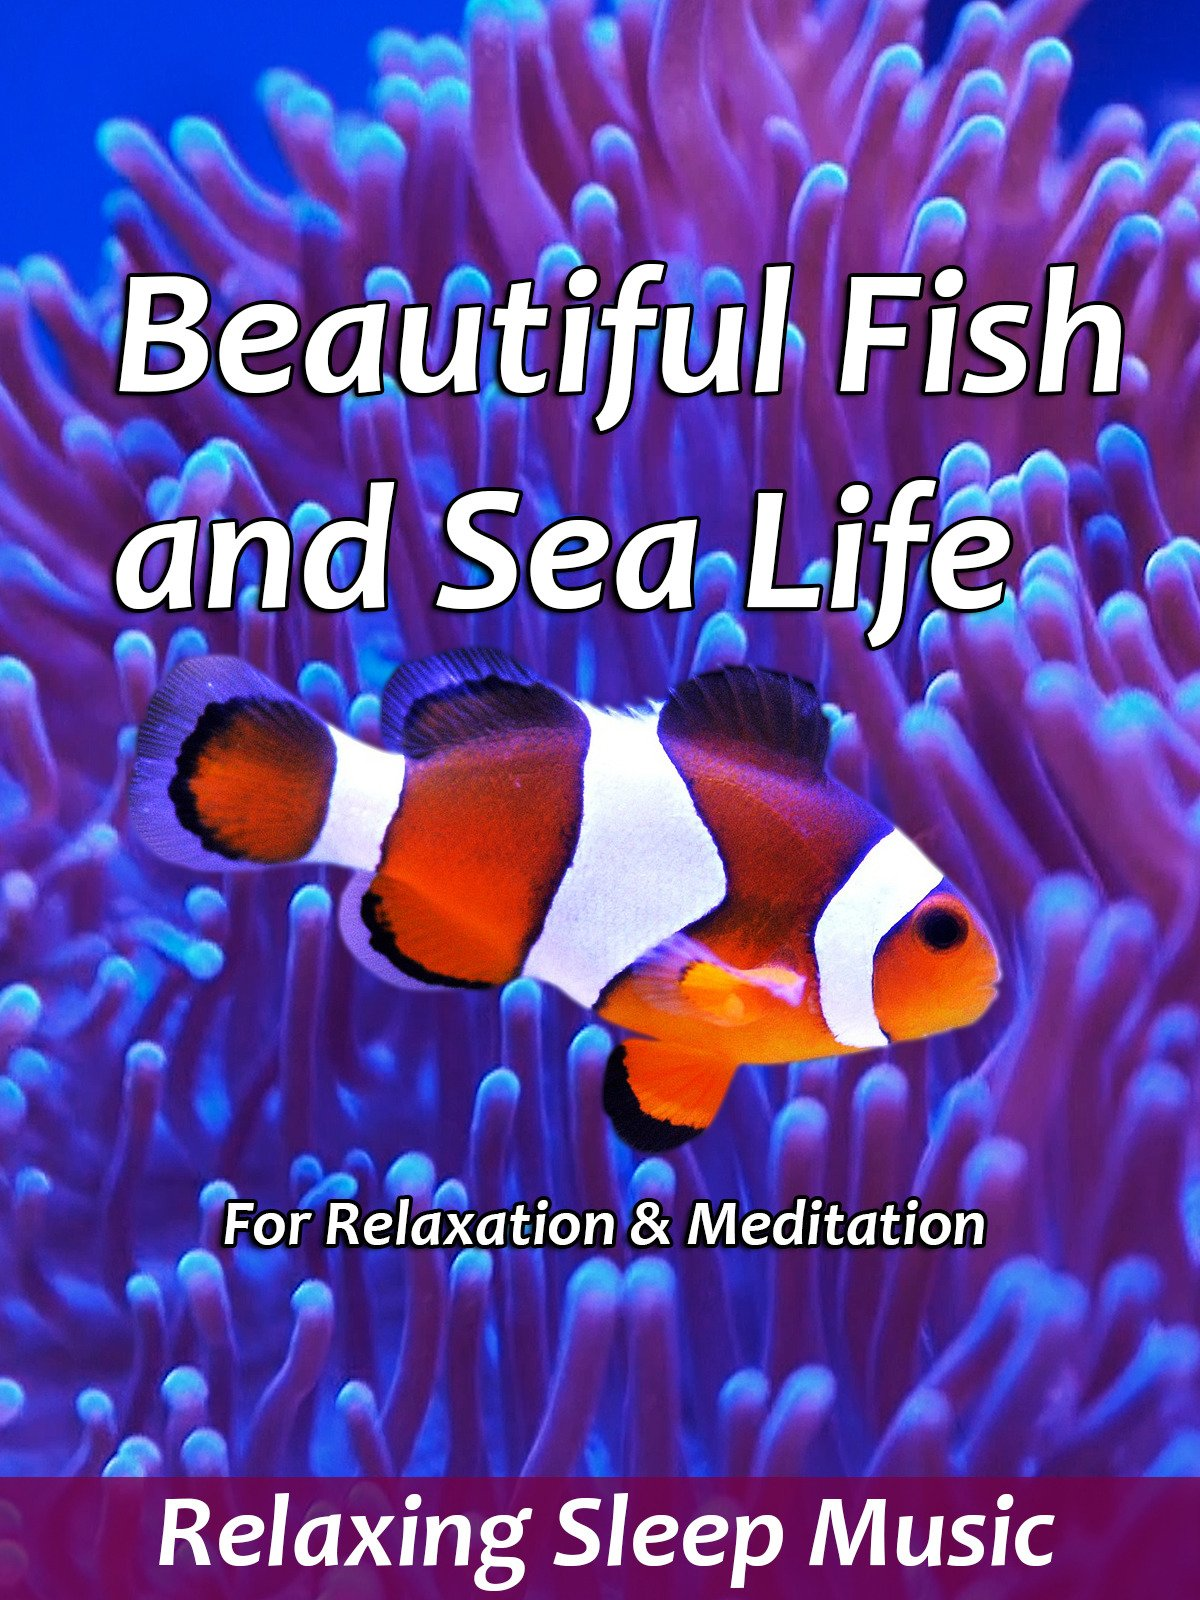 Beautiful Fish and Sea Life for Relaxation & Meditation